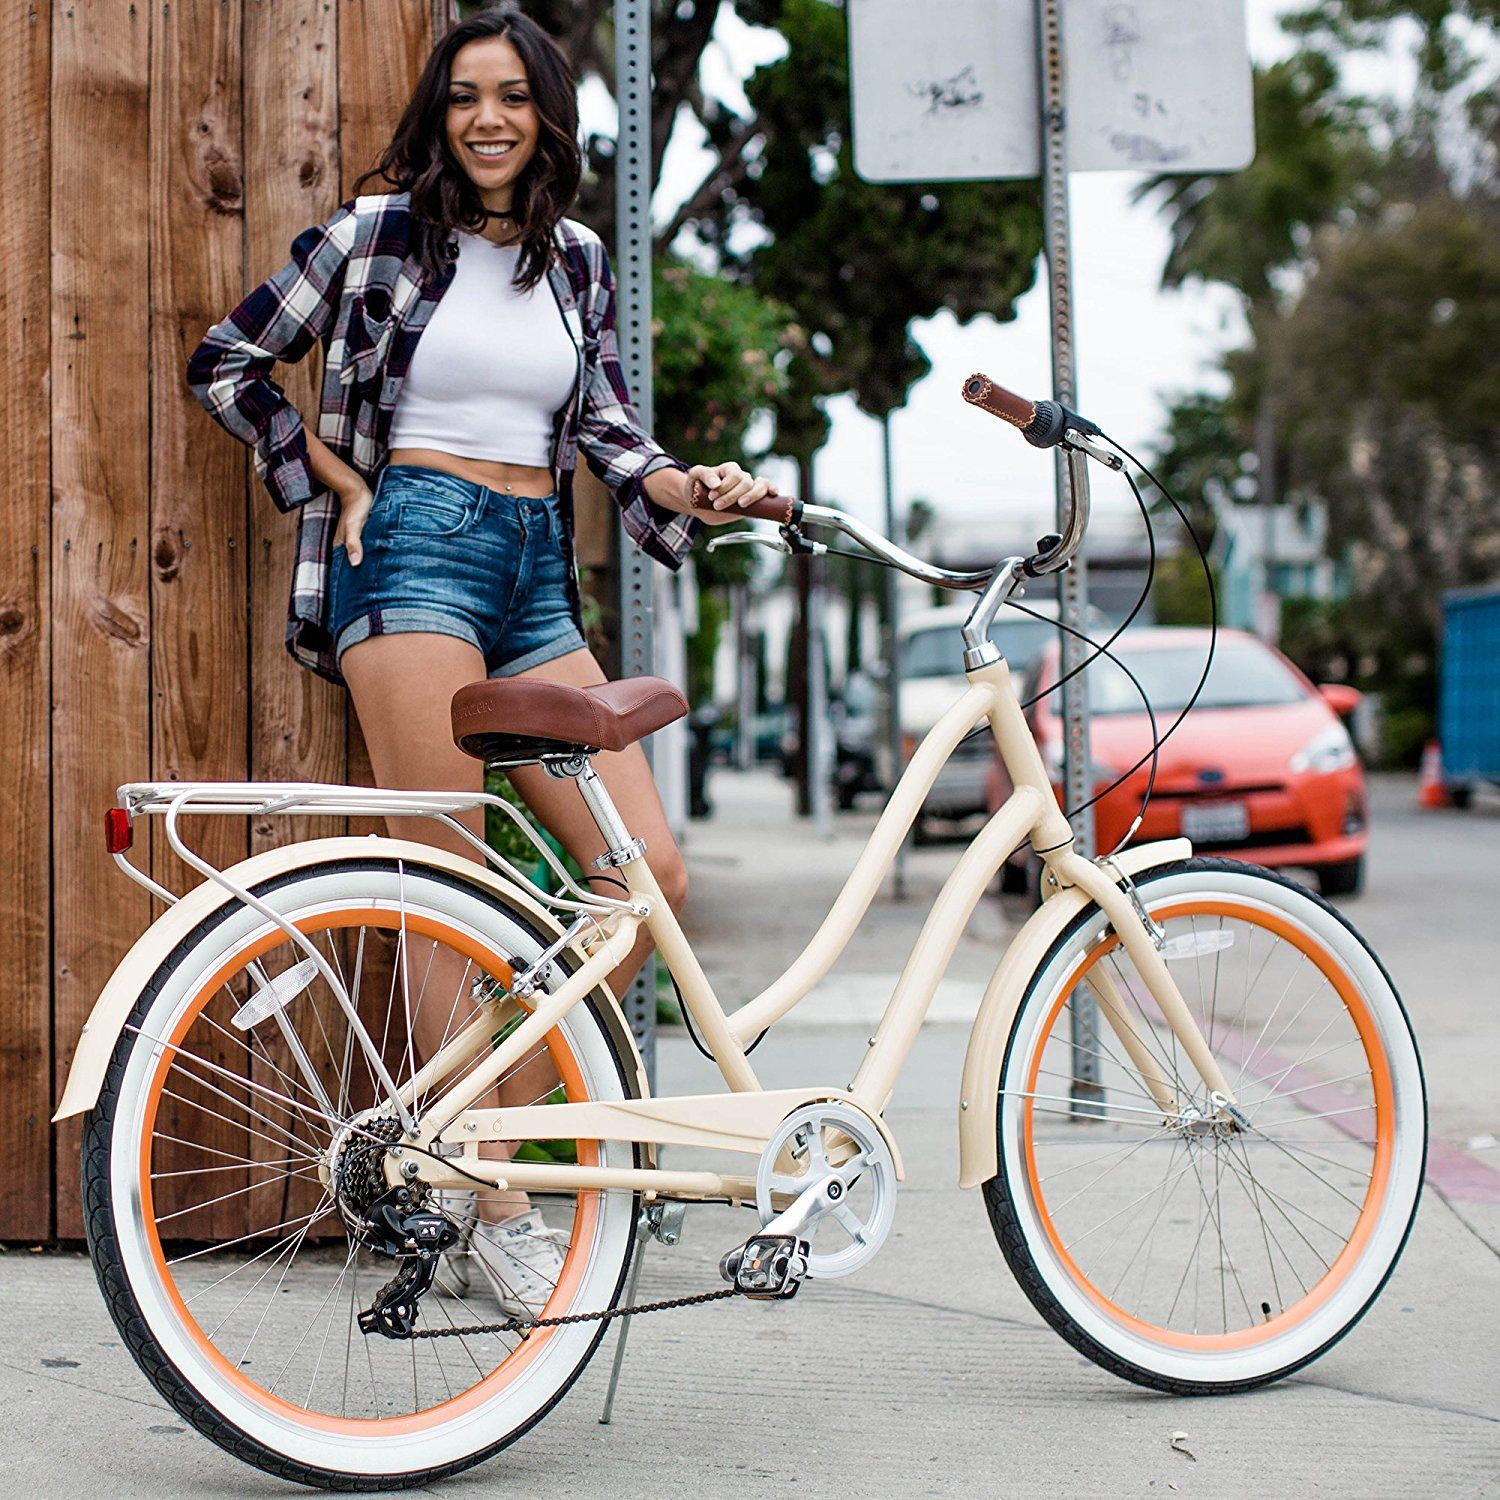 The 10 Best Hybrid Bikes For Women To Buy In 2020 Hybrid Bike